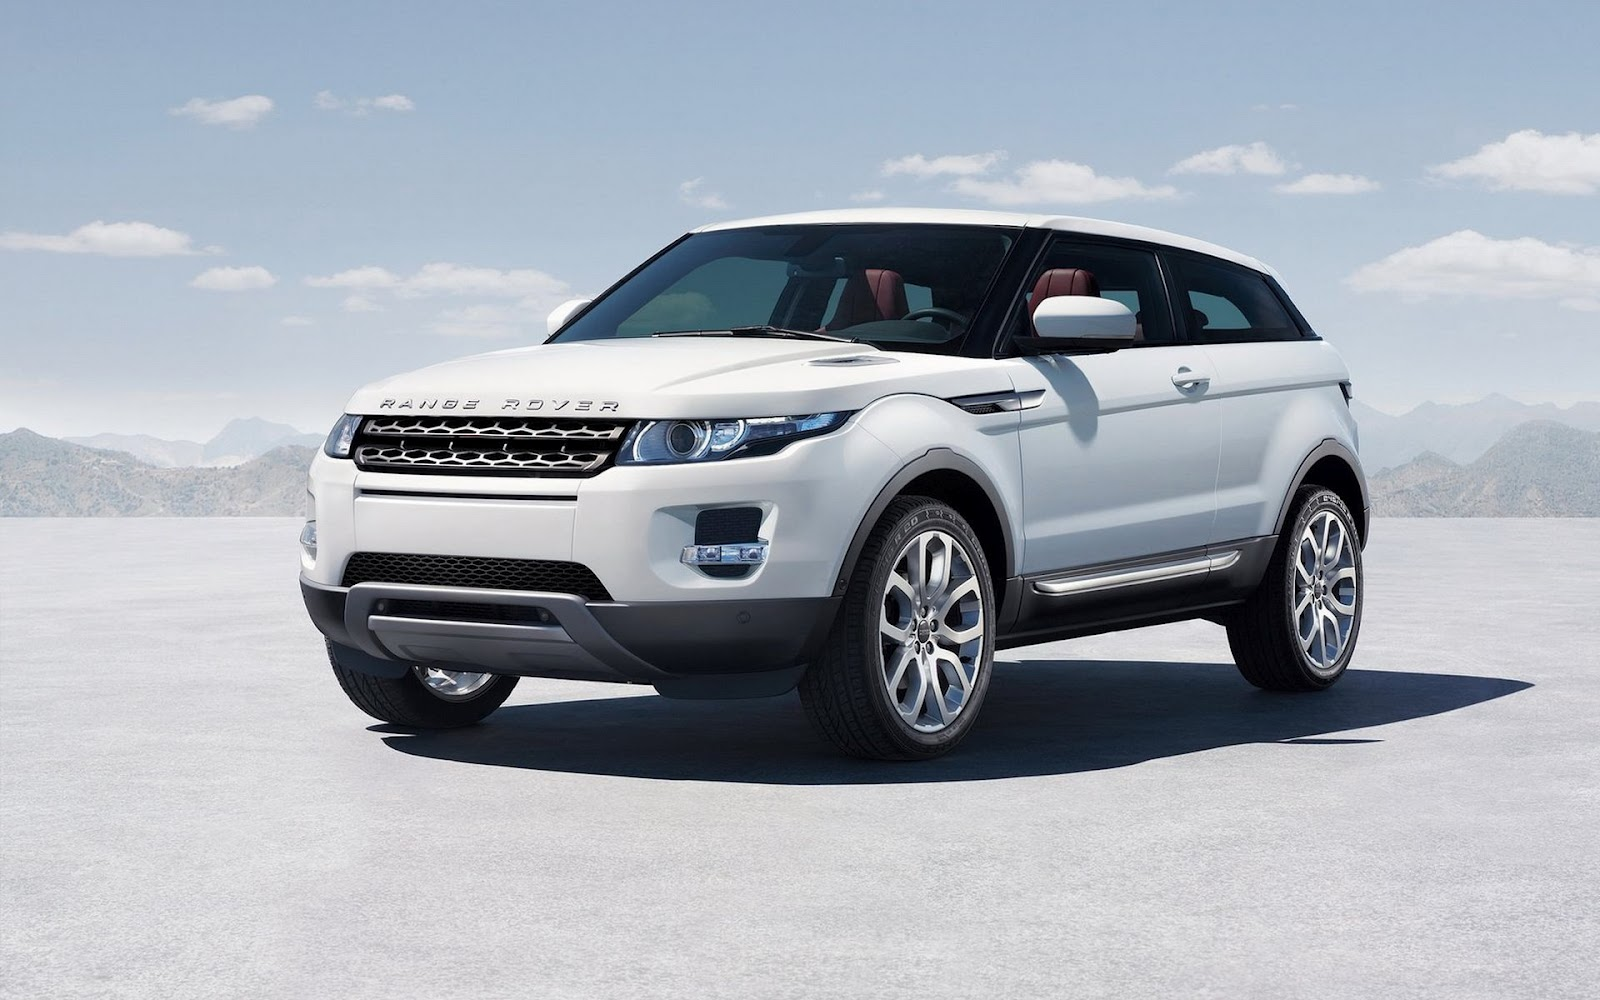 wallpapers of beautiful cars land rover range rover evoque. Black Bedroom Furniture Sets. Home Design Ideas